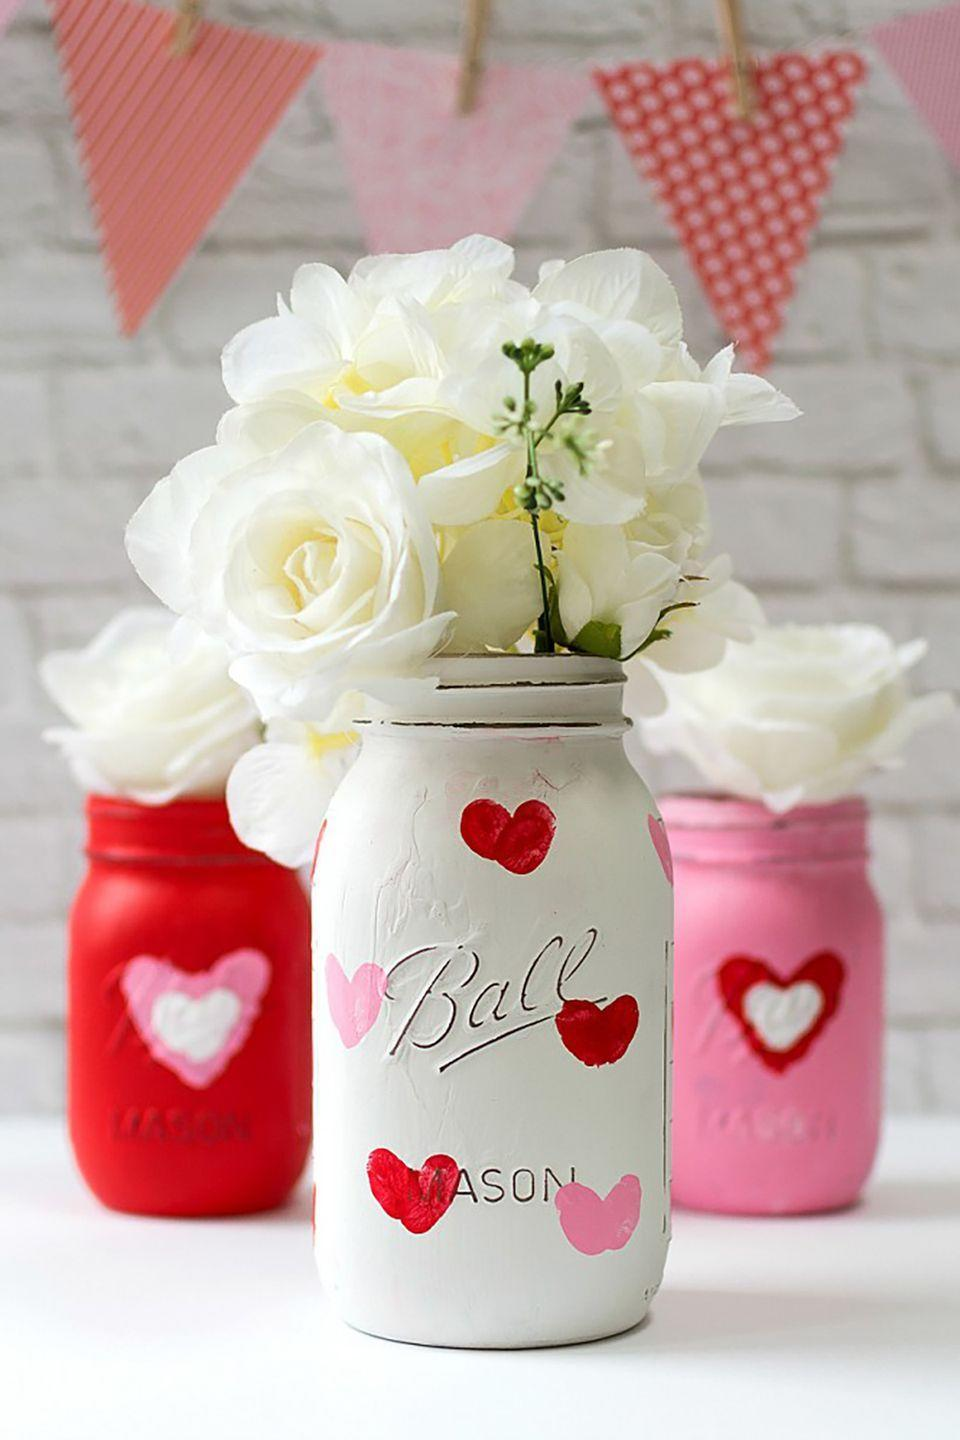 """<p>Adding thumbprints to red and white mason jars turns them into a timeless gift. Kids will love helping out with this craft, too!</p><p><strong>Get the tutorial at <a href=""""http://www.itallstartedwithpaint.com/valentine-kid-craft-thumbprint-heart-jars/?utm_source=feedburner&utm_medium=email&utm_campaign=Feed:+ItAllStartedWithPaint+(it+all+started+with+paint)&crlt.pid=camp.uK4pKHKwi4DU"""" rel=""""nofollow noopener"""" target=""""_blank"""" data-ylk=""""slk:It All Started With Paint"""" class=""""link rapid-noclick-resp"""">It All Started With Paint</a>.</strong></p><p><strong><a class=""""link rapid-noclick-resp"""" href=""""https://www.amazon.com/Magicfly-Acrylic-Paint-Set-Multi-Surface/dp/B07P9Y1DJ8/ref=sr_1_1_sspa?tag=syn-yahoo-20&ascsubtag=%5Bartid%7C10050.g.93%5Bsrc%7Cyahoo-us"""" rel=""""nofollow noopener"""" target=""""_blank"""" data-ylk=""""slk:SHOP PAINT"""">SHOP PAINT</a><br></strong></p>"""